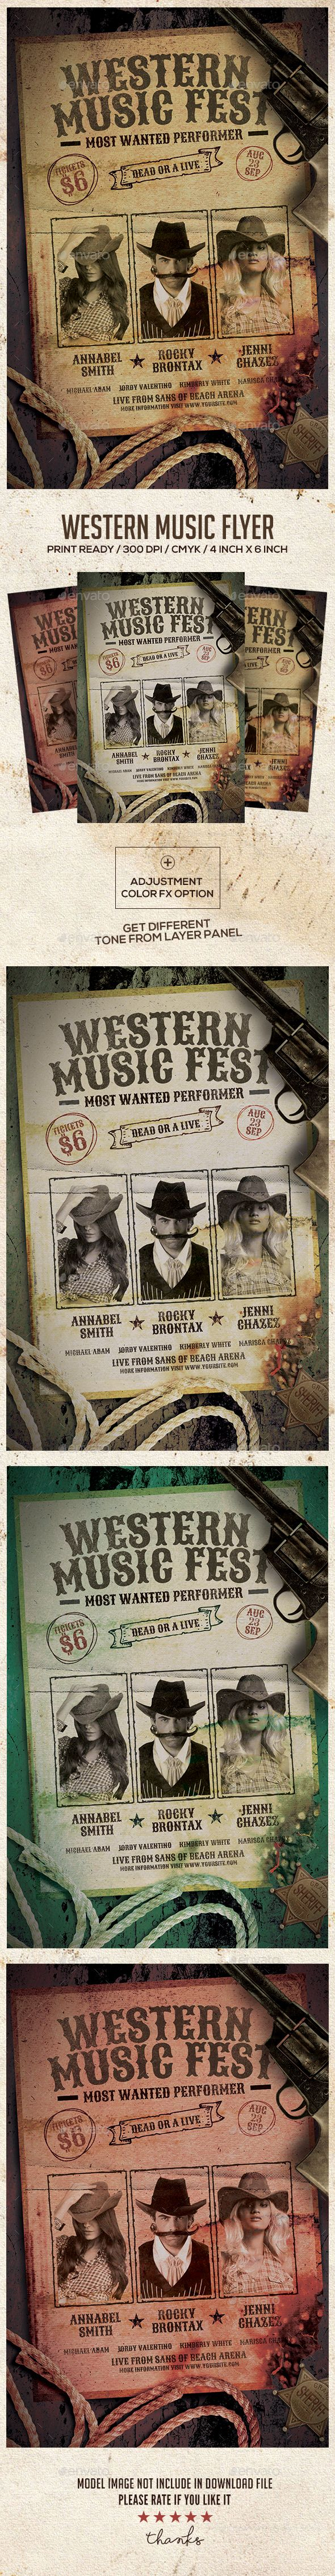 Wild West Country #Music Event #Flyer - Concerts #Events Download here:  https://graphicriver.net/item/wild-west-country-music-event-flyer/19553471?ref=alena994